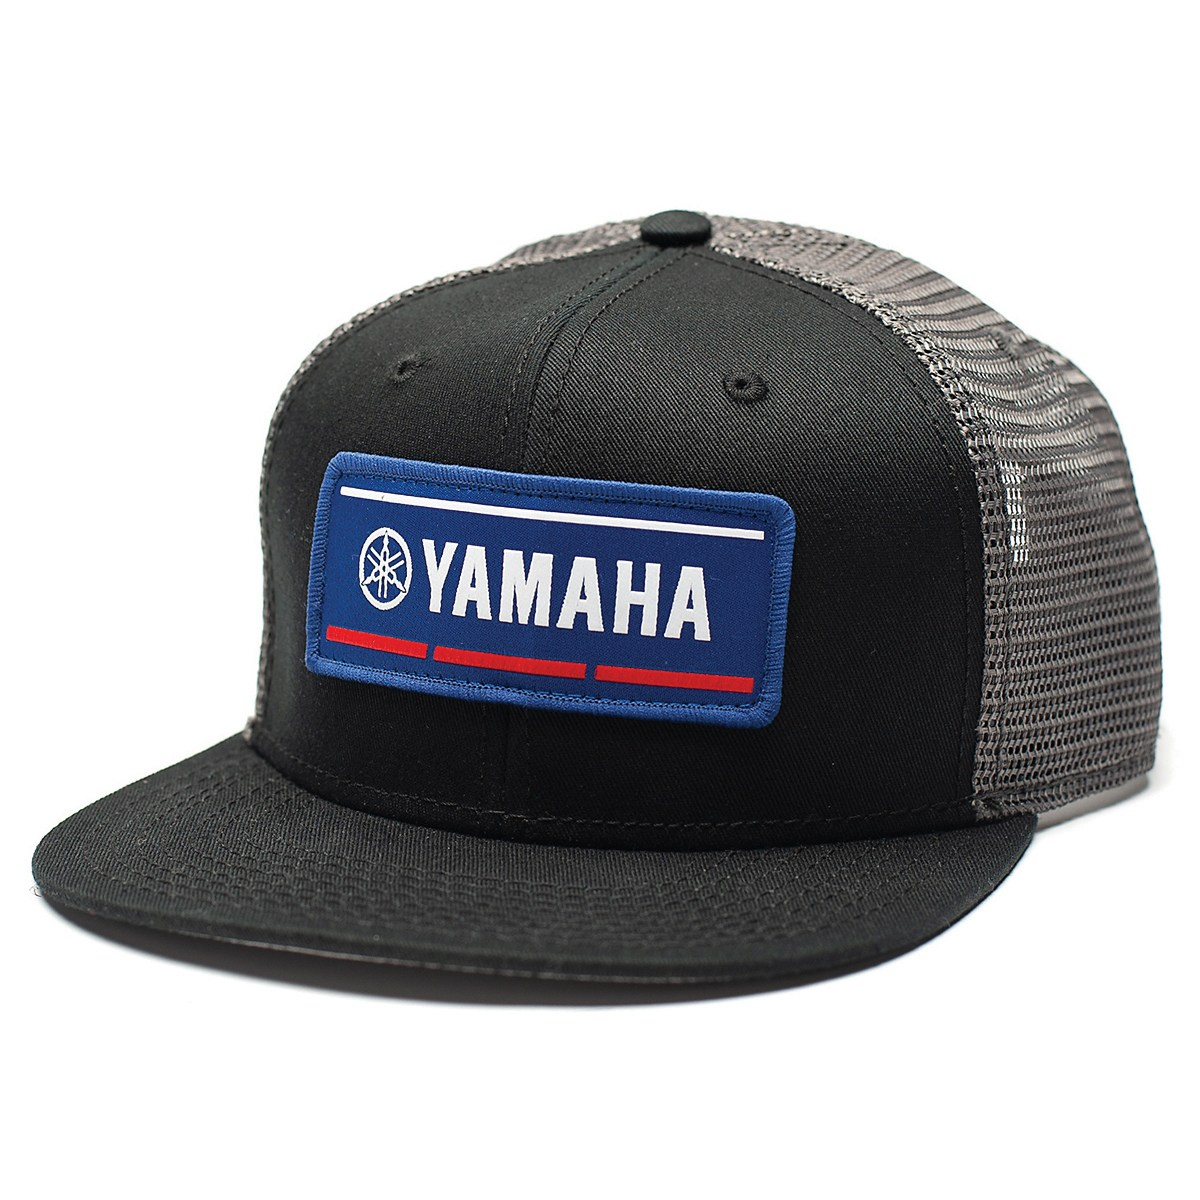 4ba7557e6a2 Description. Features a black snap-back trucker hat with embroidered Yamaha  ...